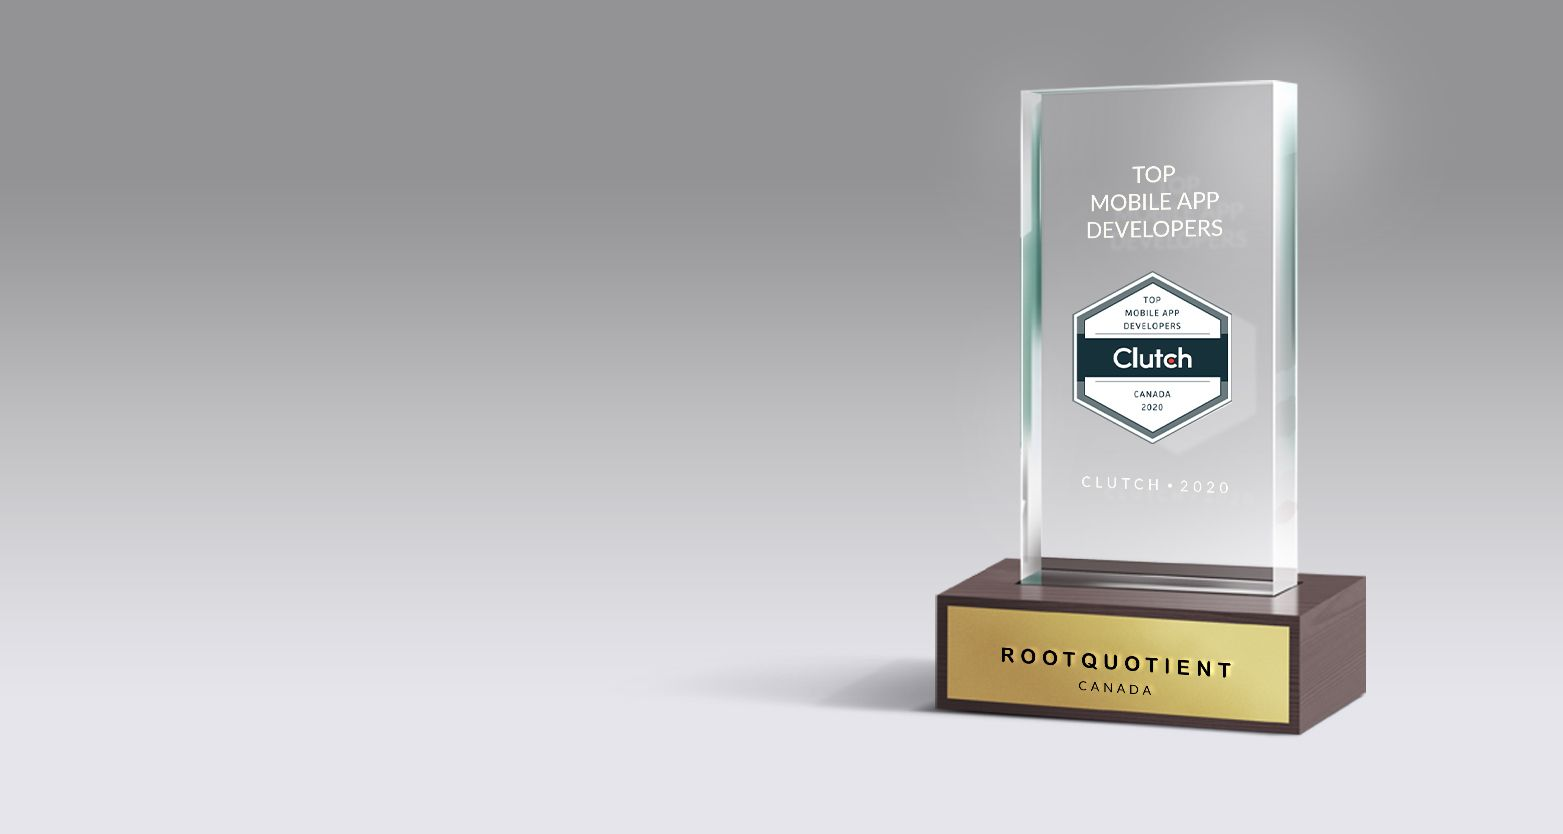 RootQuotient Recognized as Leader in Mobile App Development by Clutch